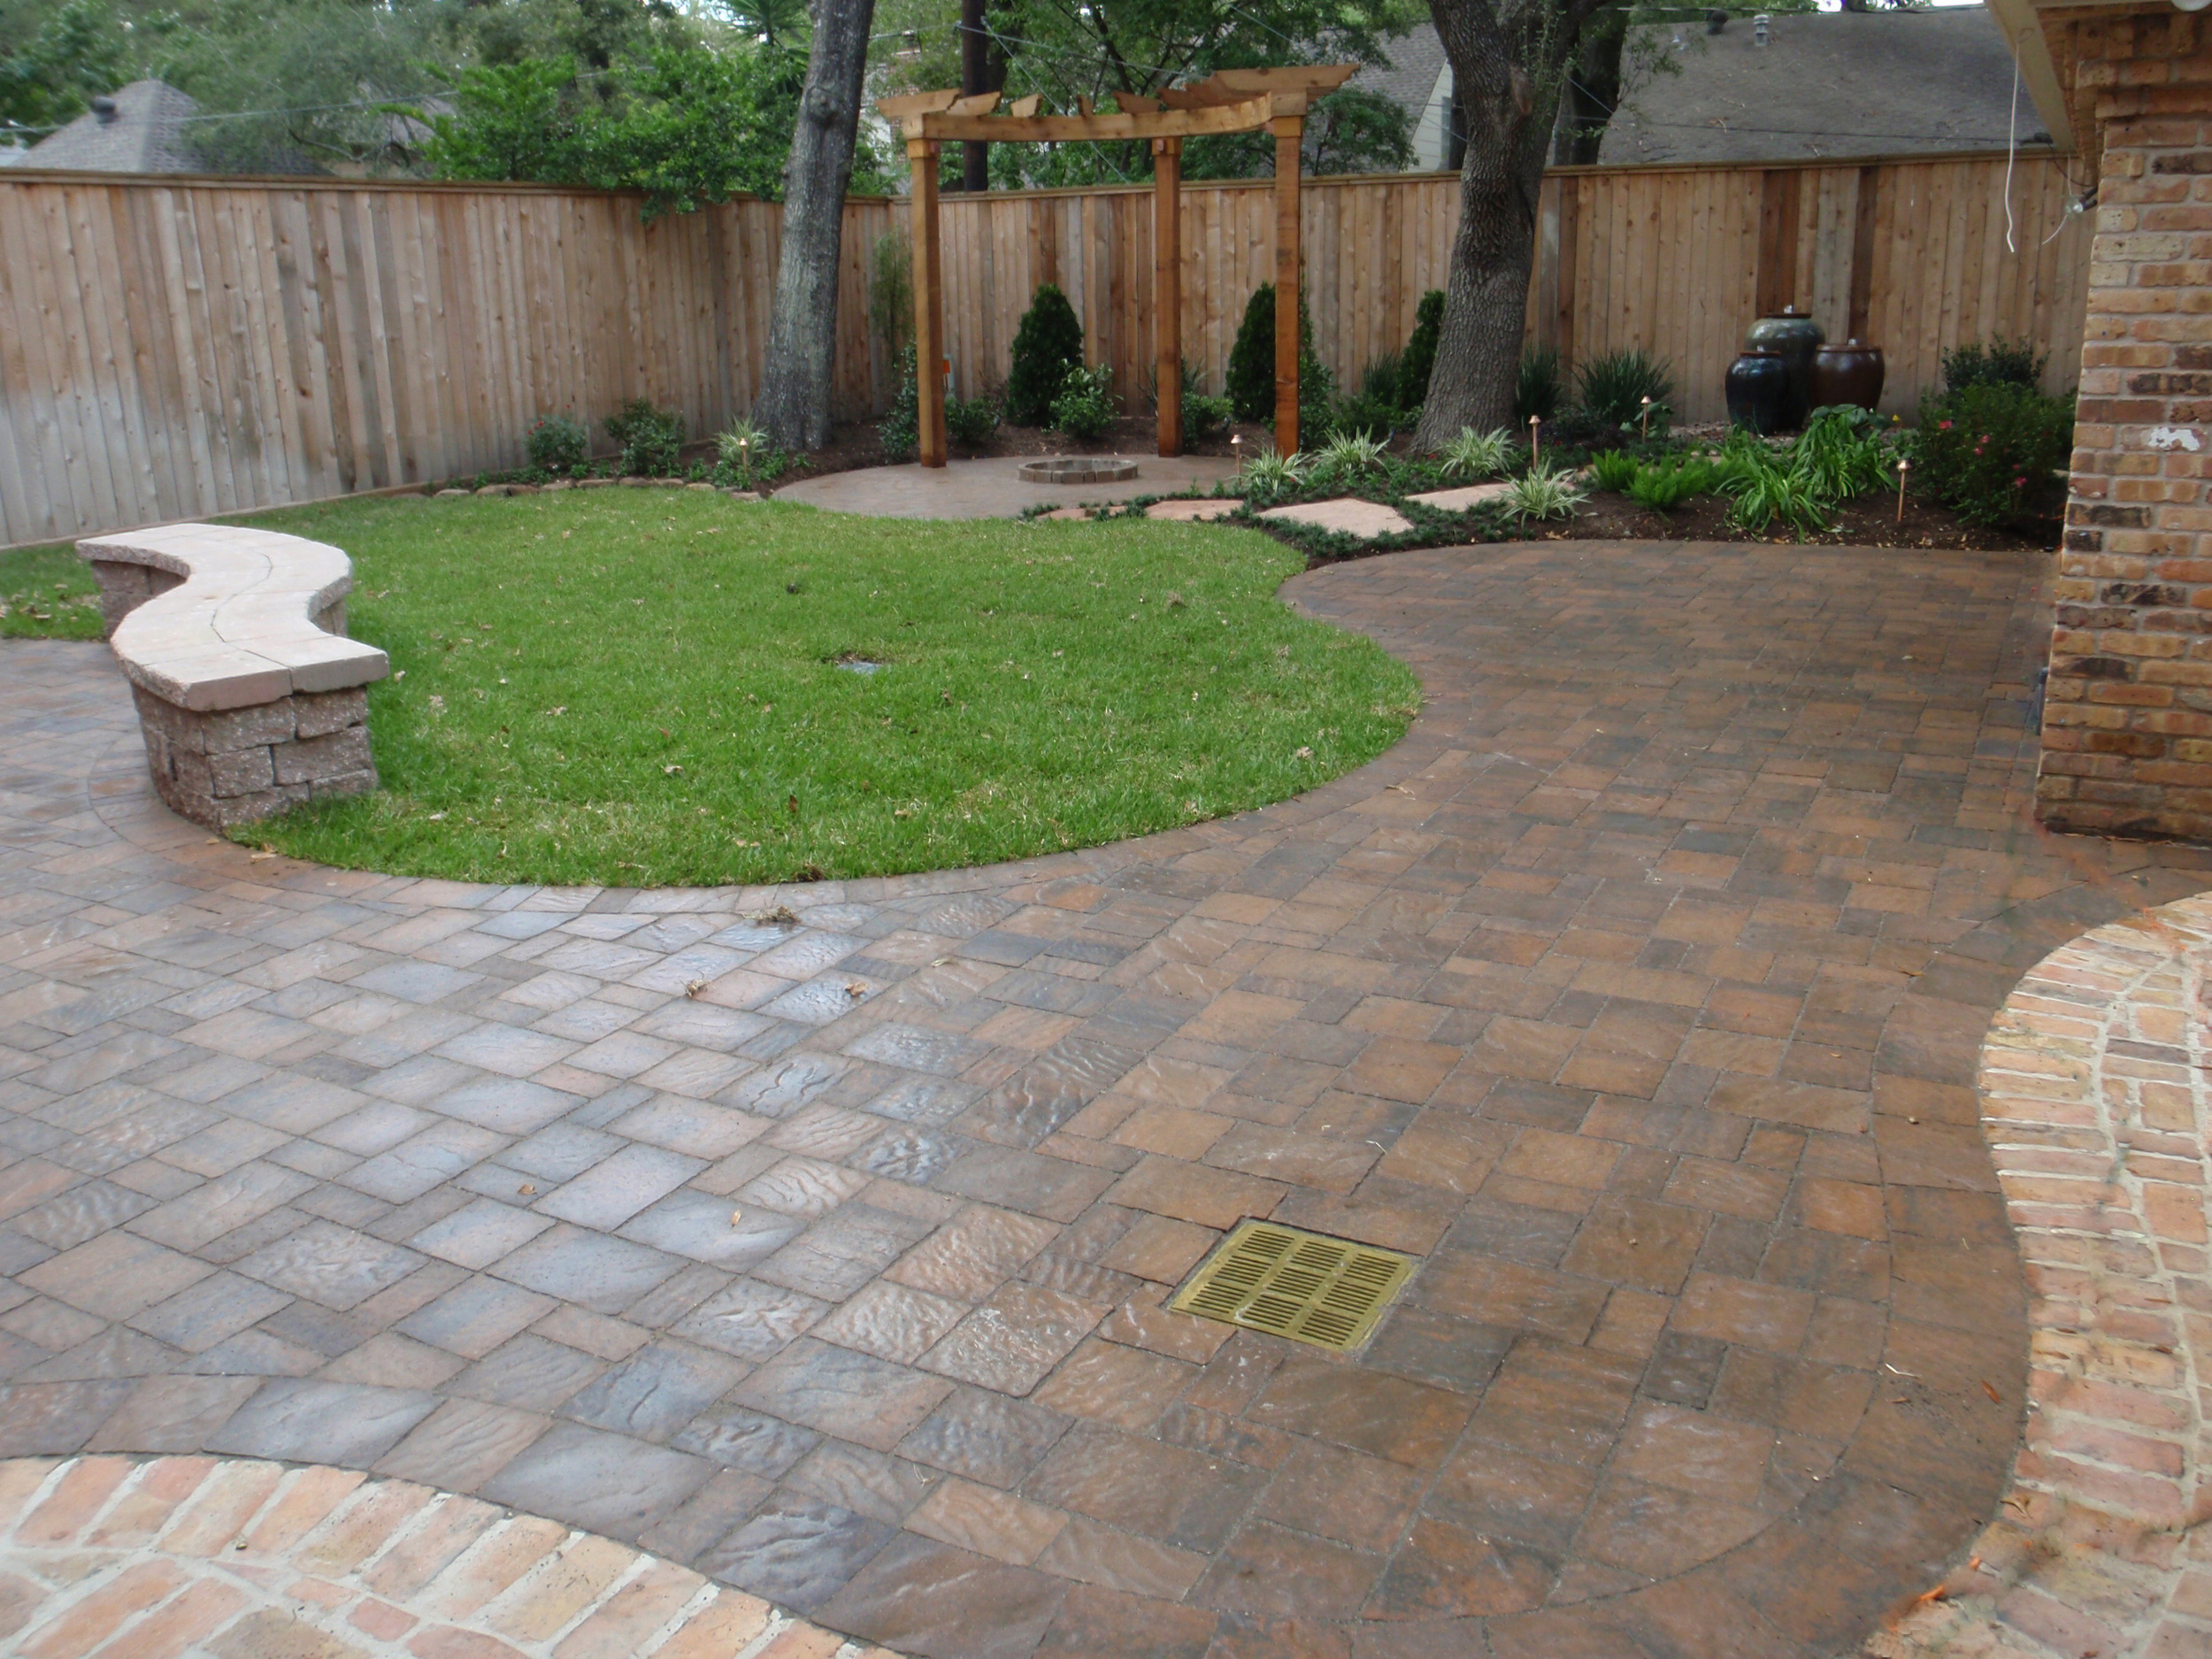 Belgard paver styles new patio inc for Belgard urbana pavers